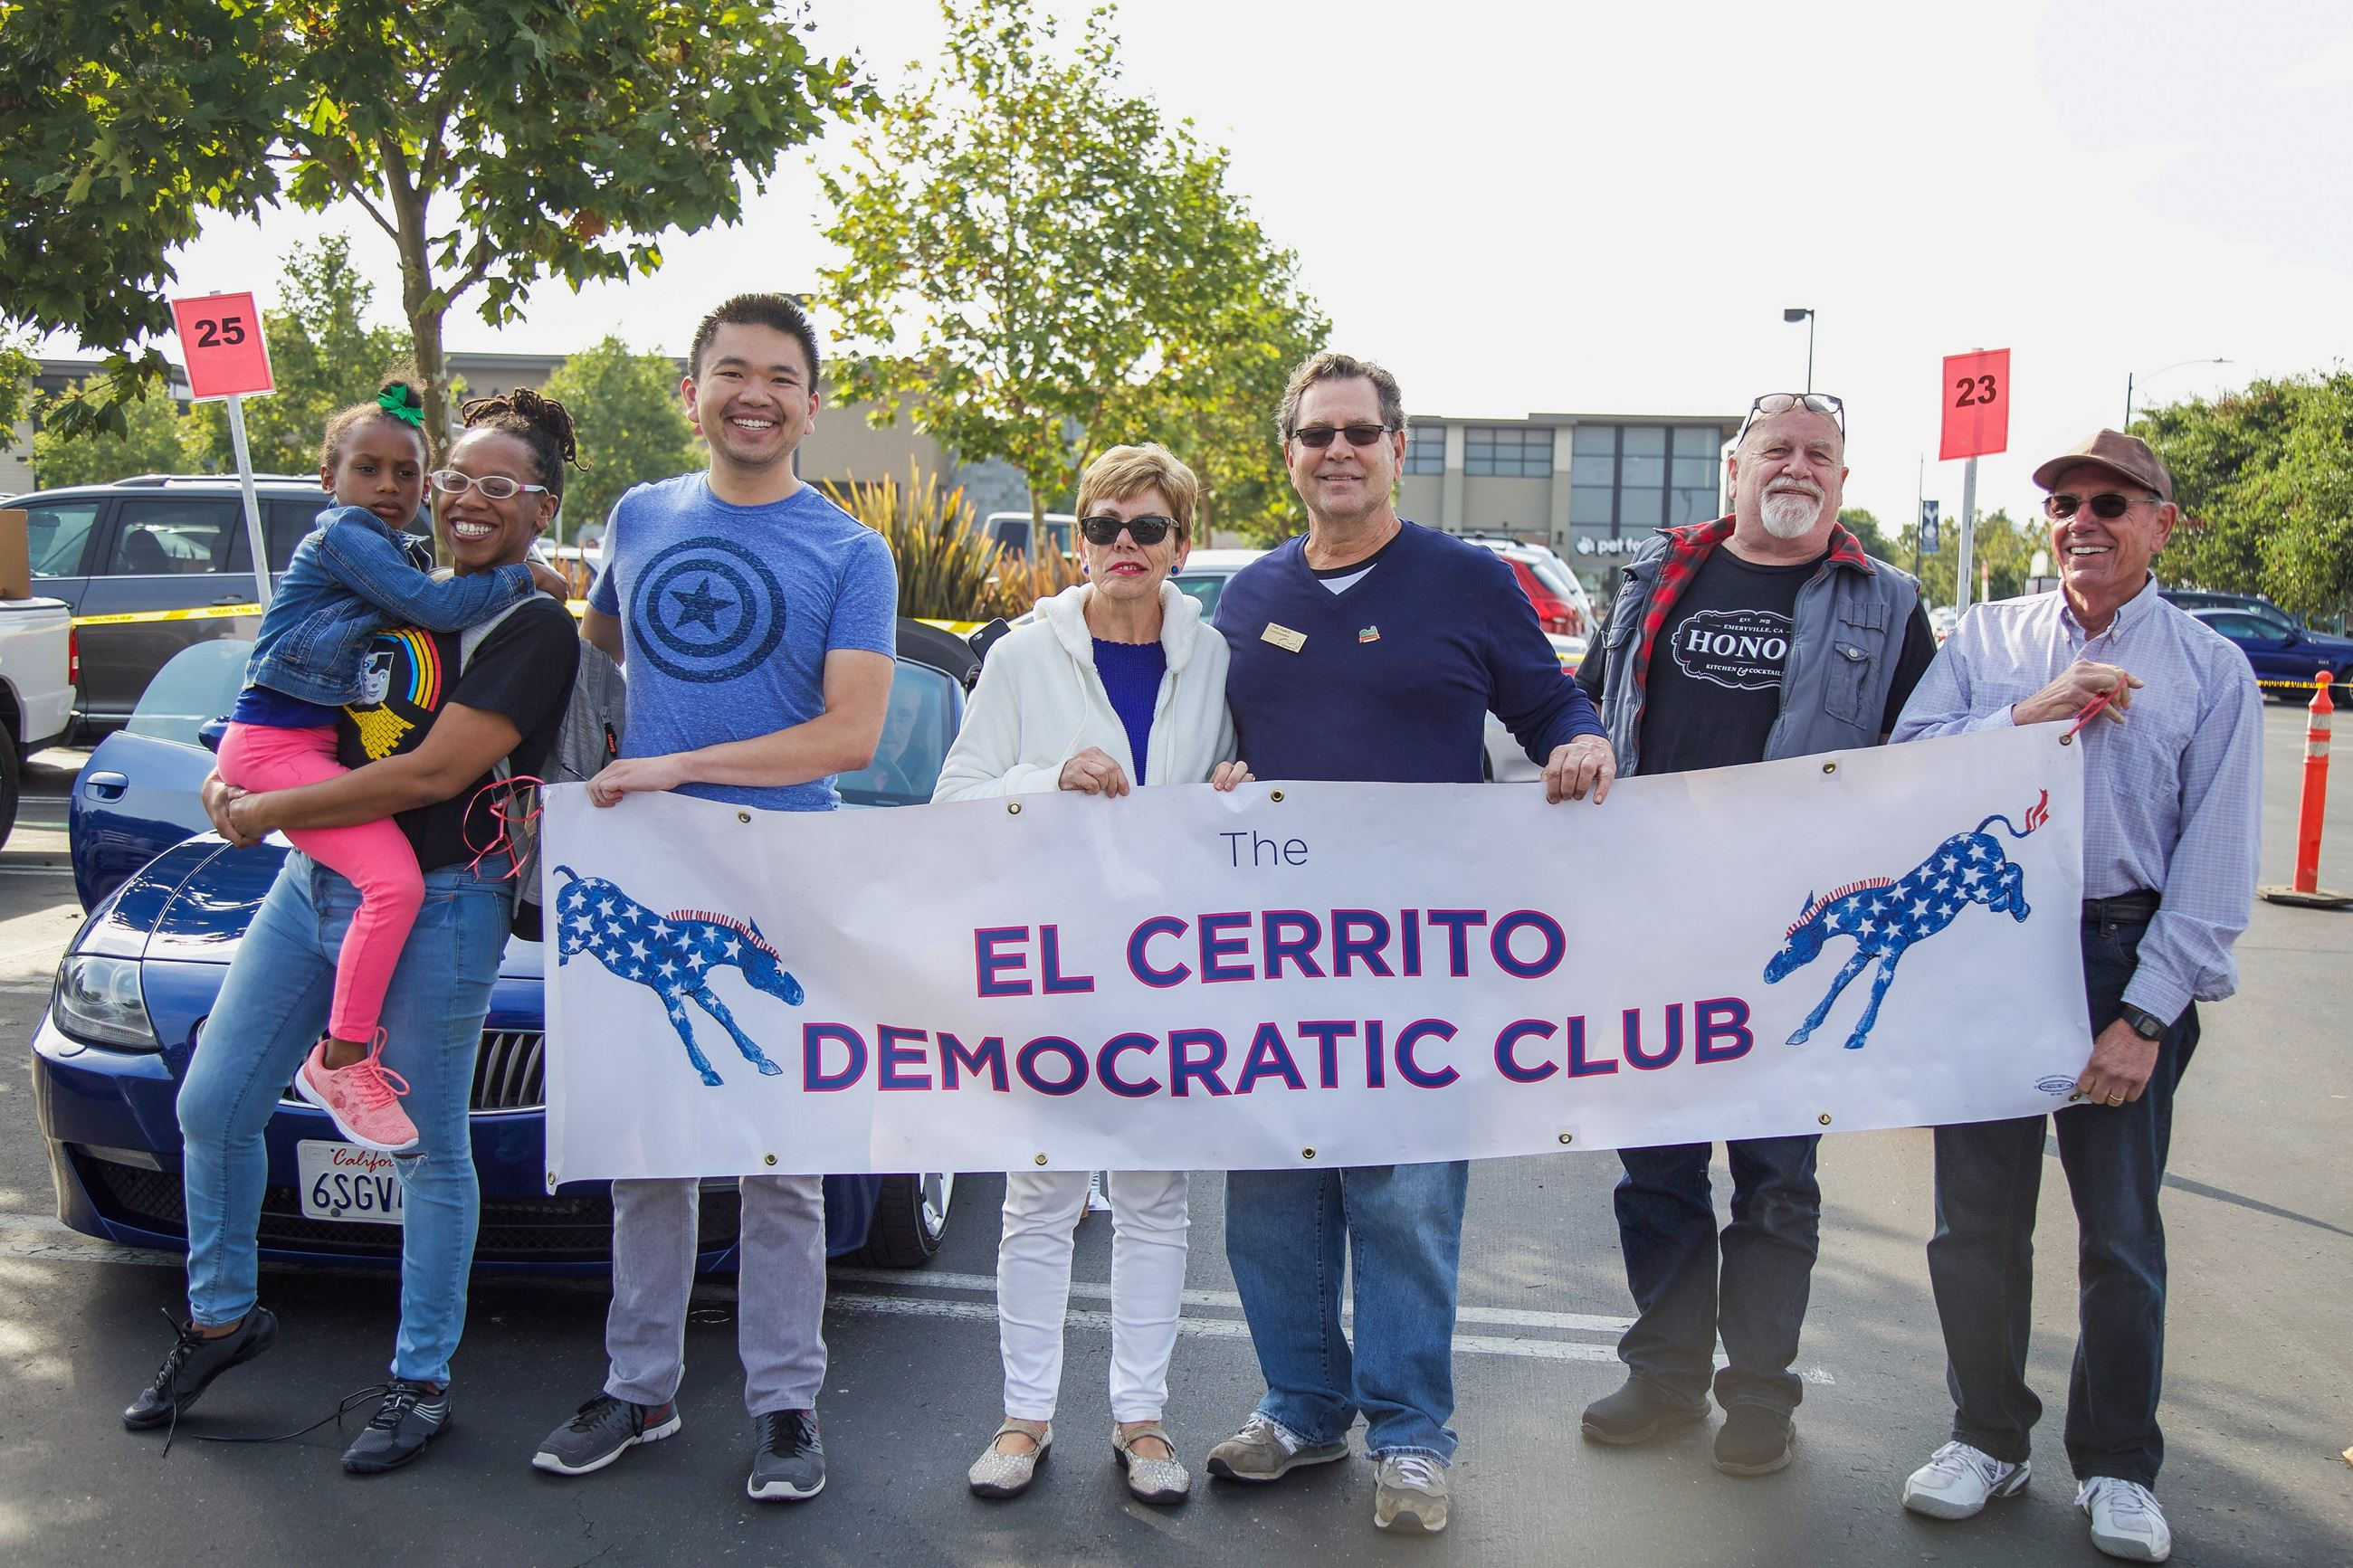 004 EC Democratic Club - Photo by Marin Stuart